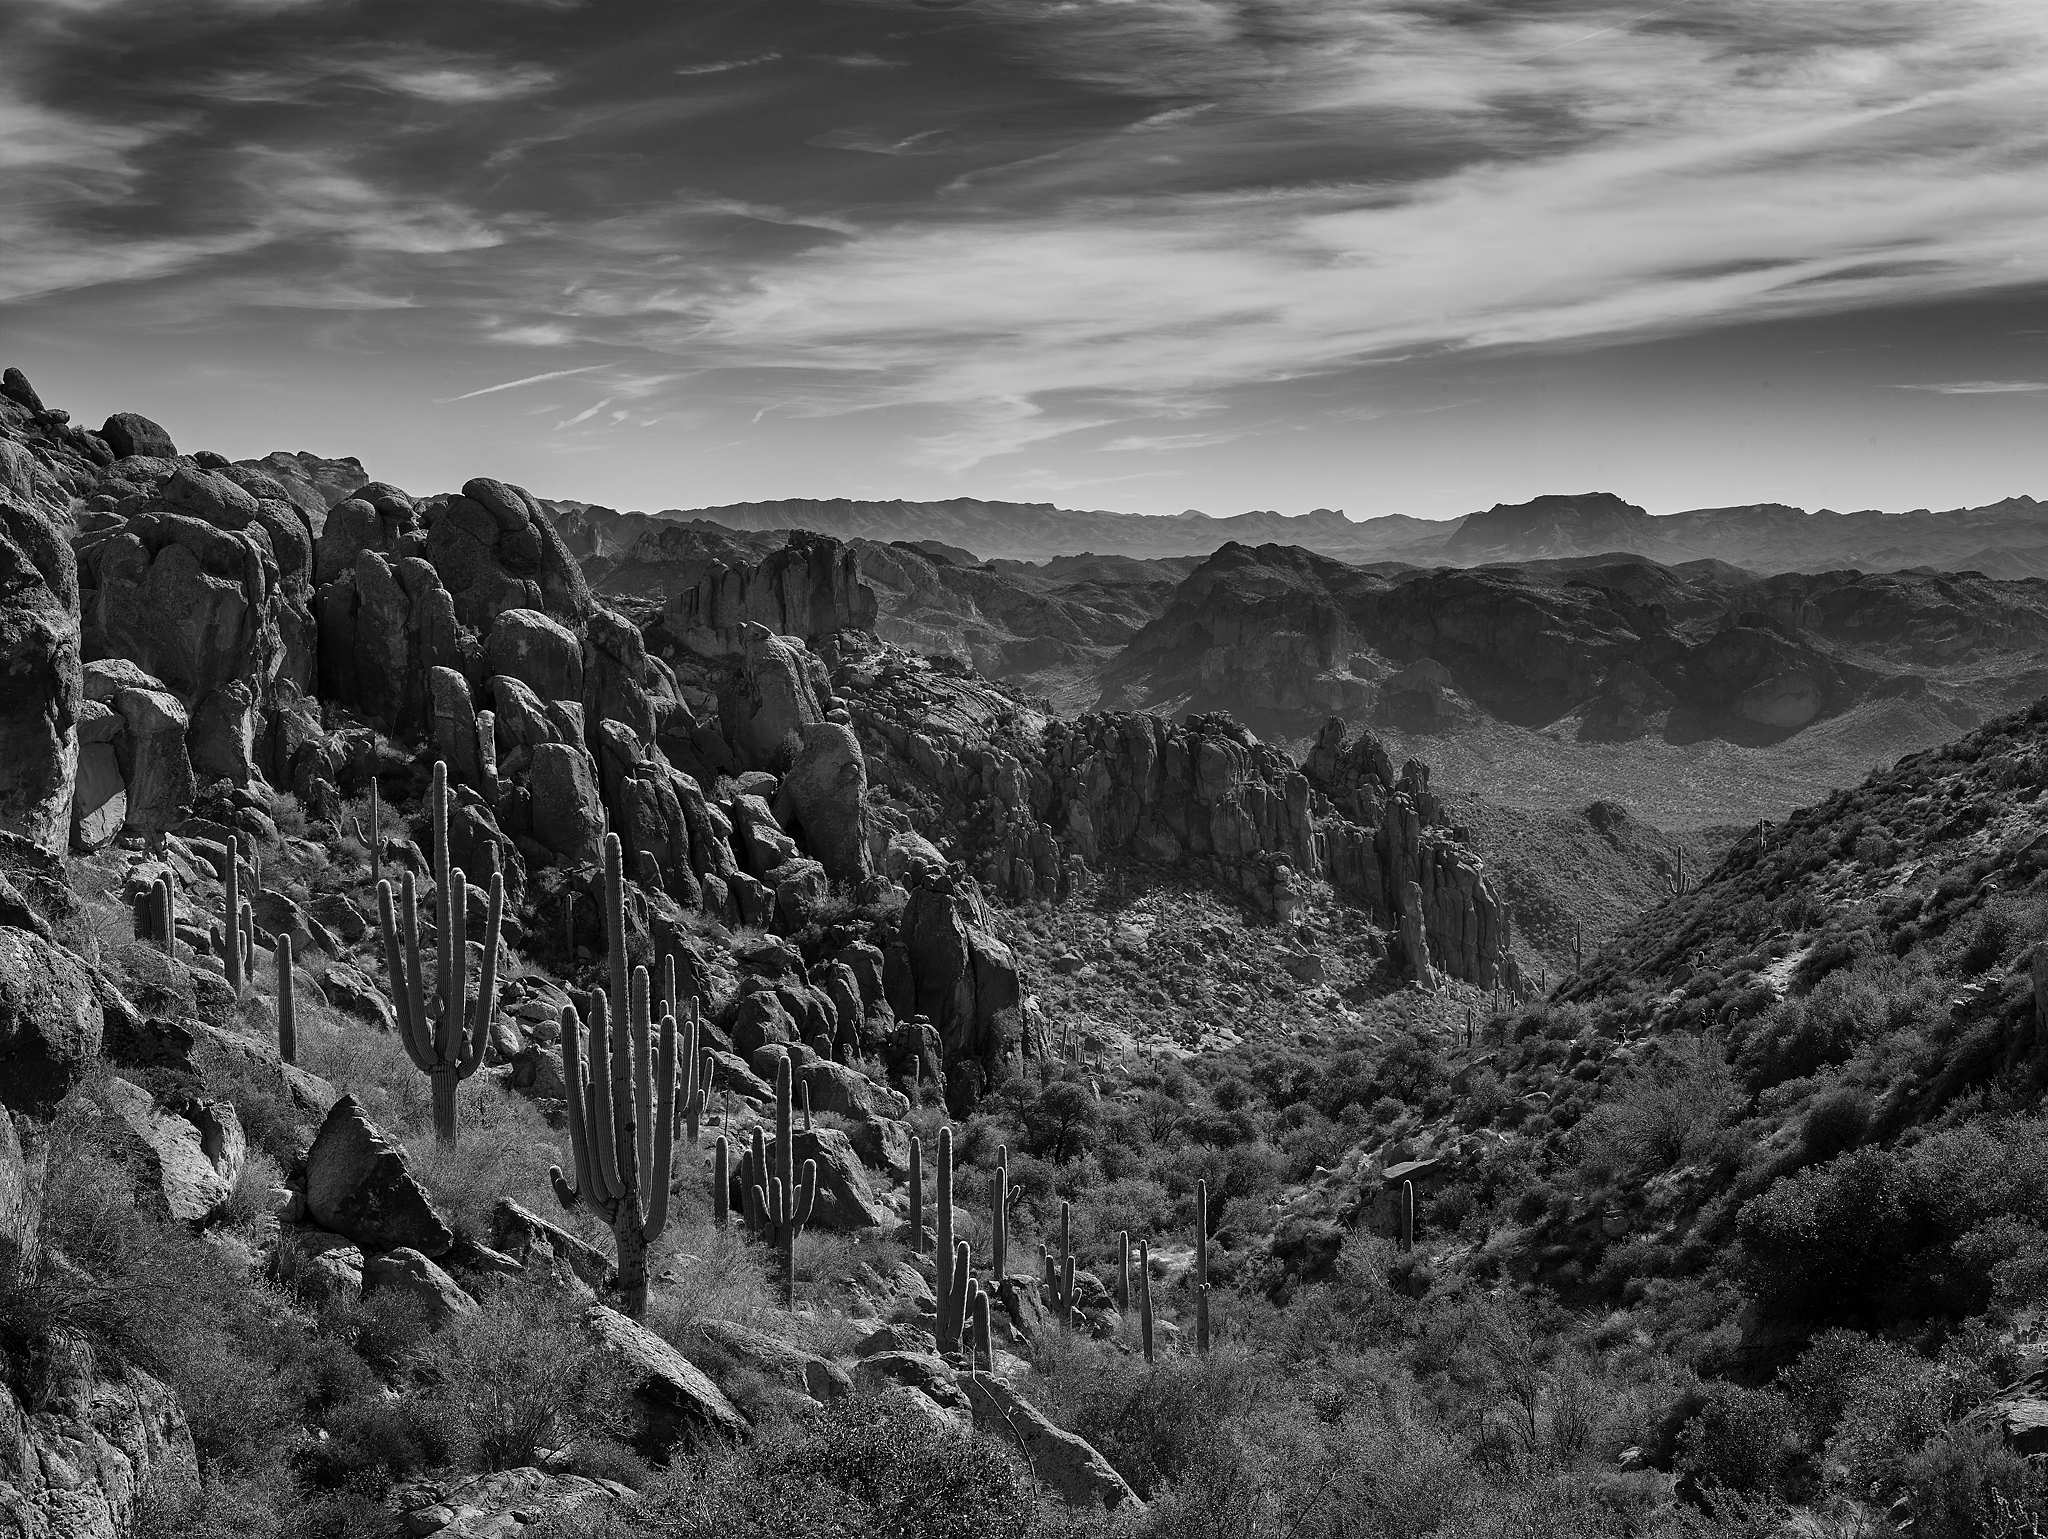 phoenix landscape photographer, arizona landscape photography, arizona landscape photos, arizona landscape photography, landscape photography, southwest landscapes, how to shoot landscape photography